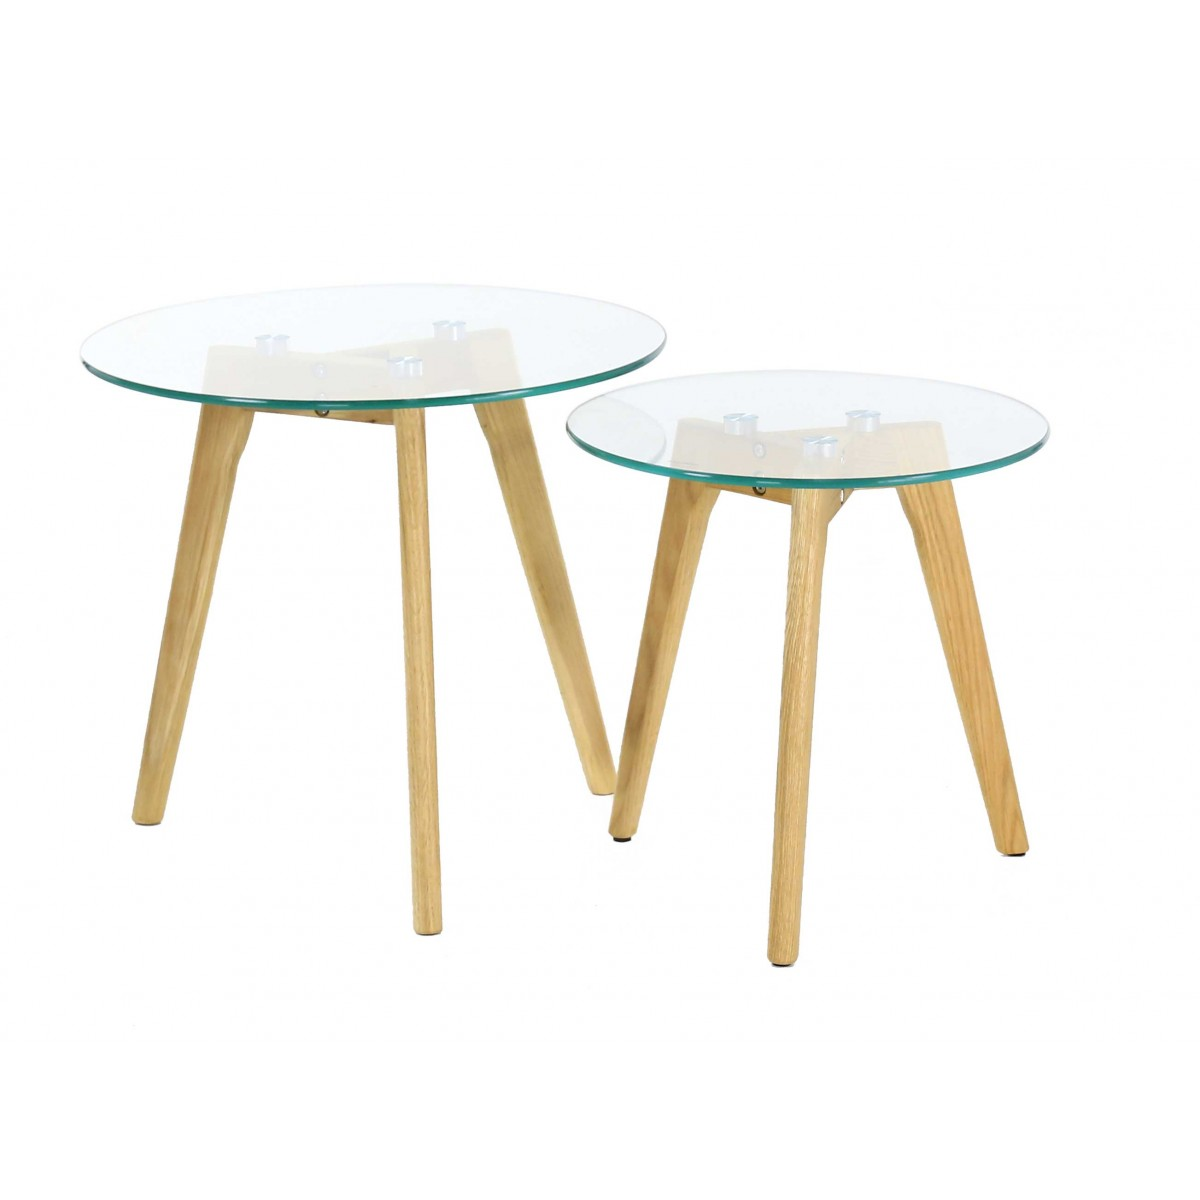 Table Basse Gigogne Design Table Basse Gigogne En Verre Design Scandie Zago Store